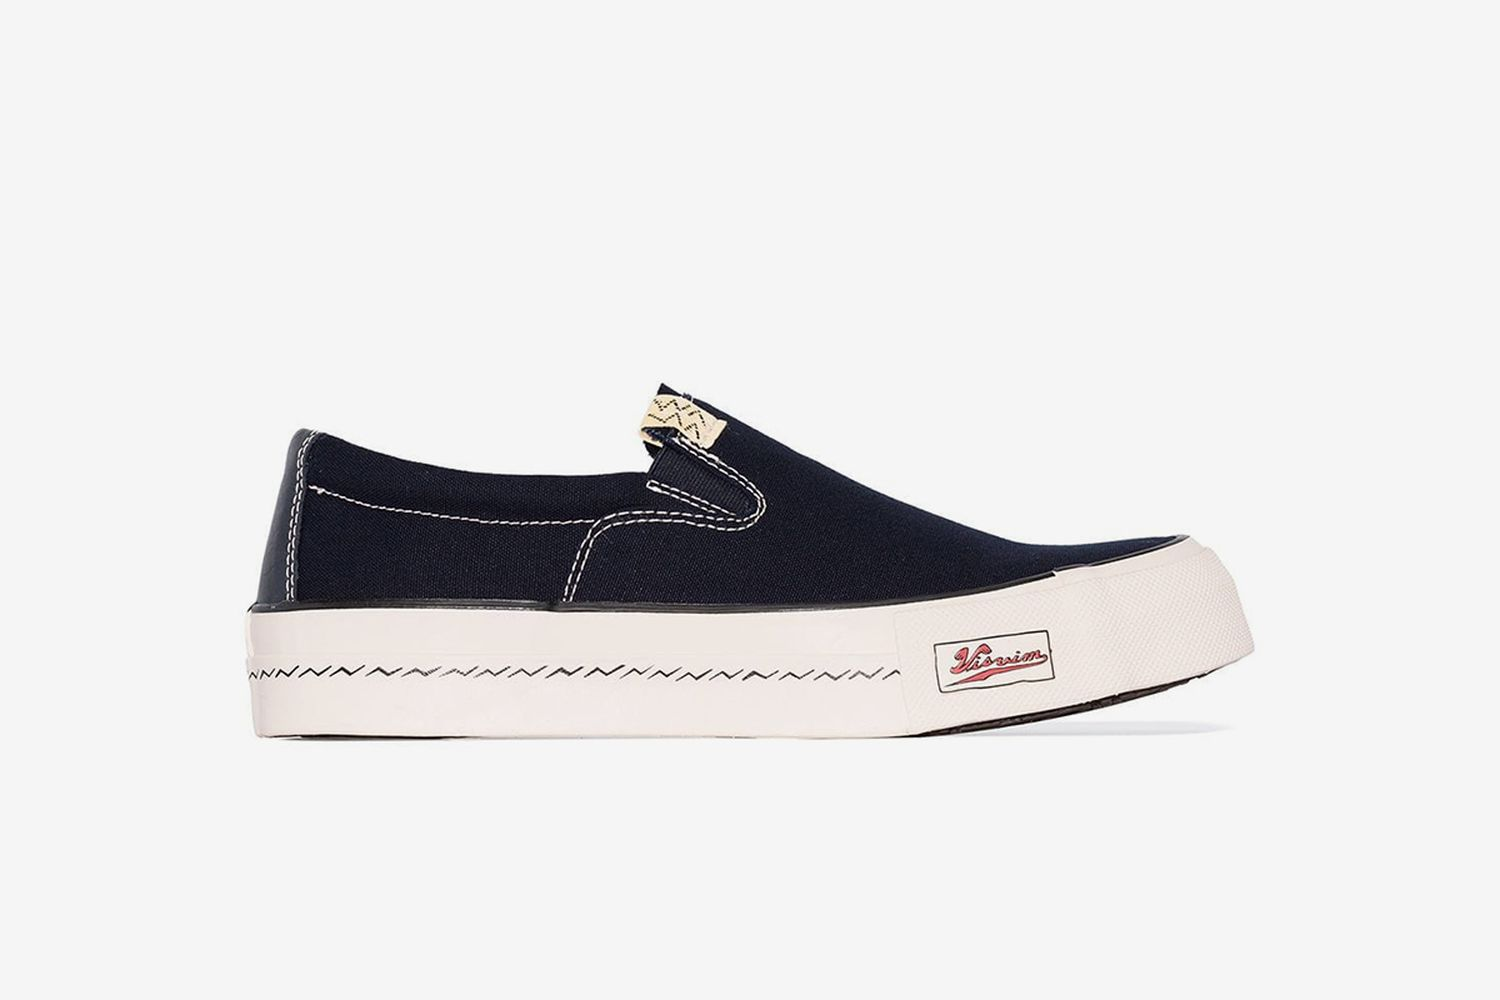 Skagway Slip-On Sneakers